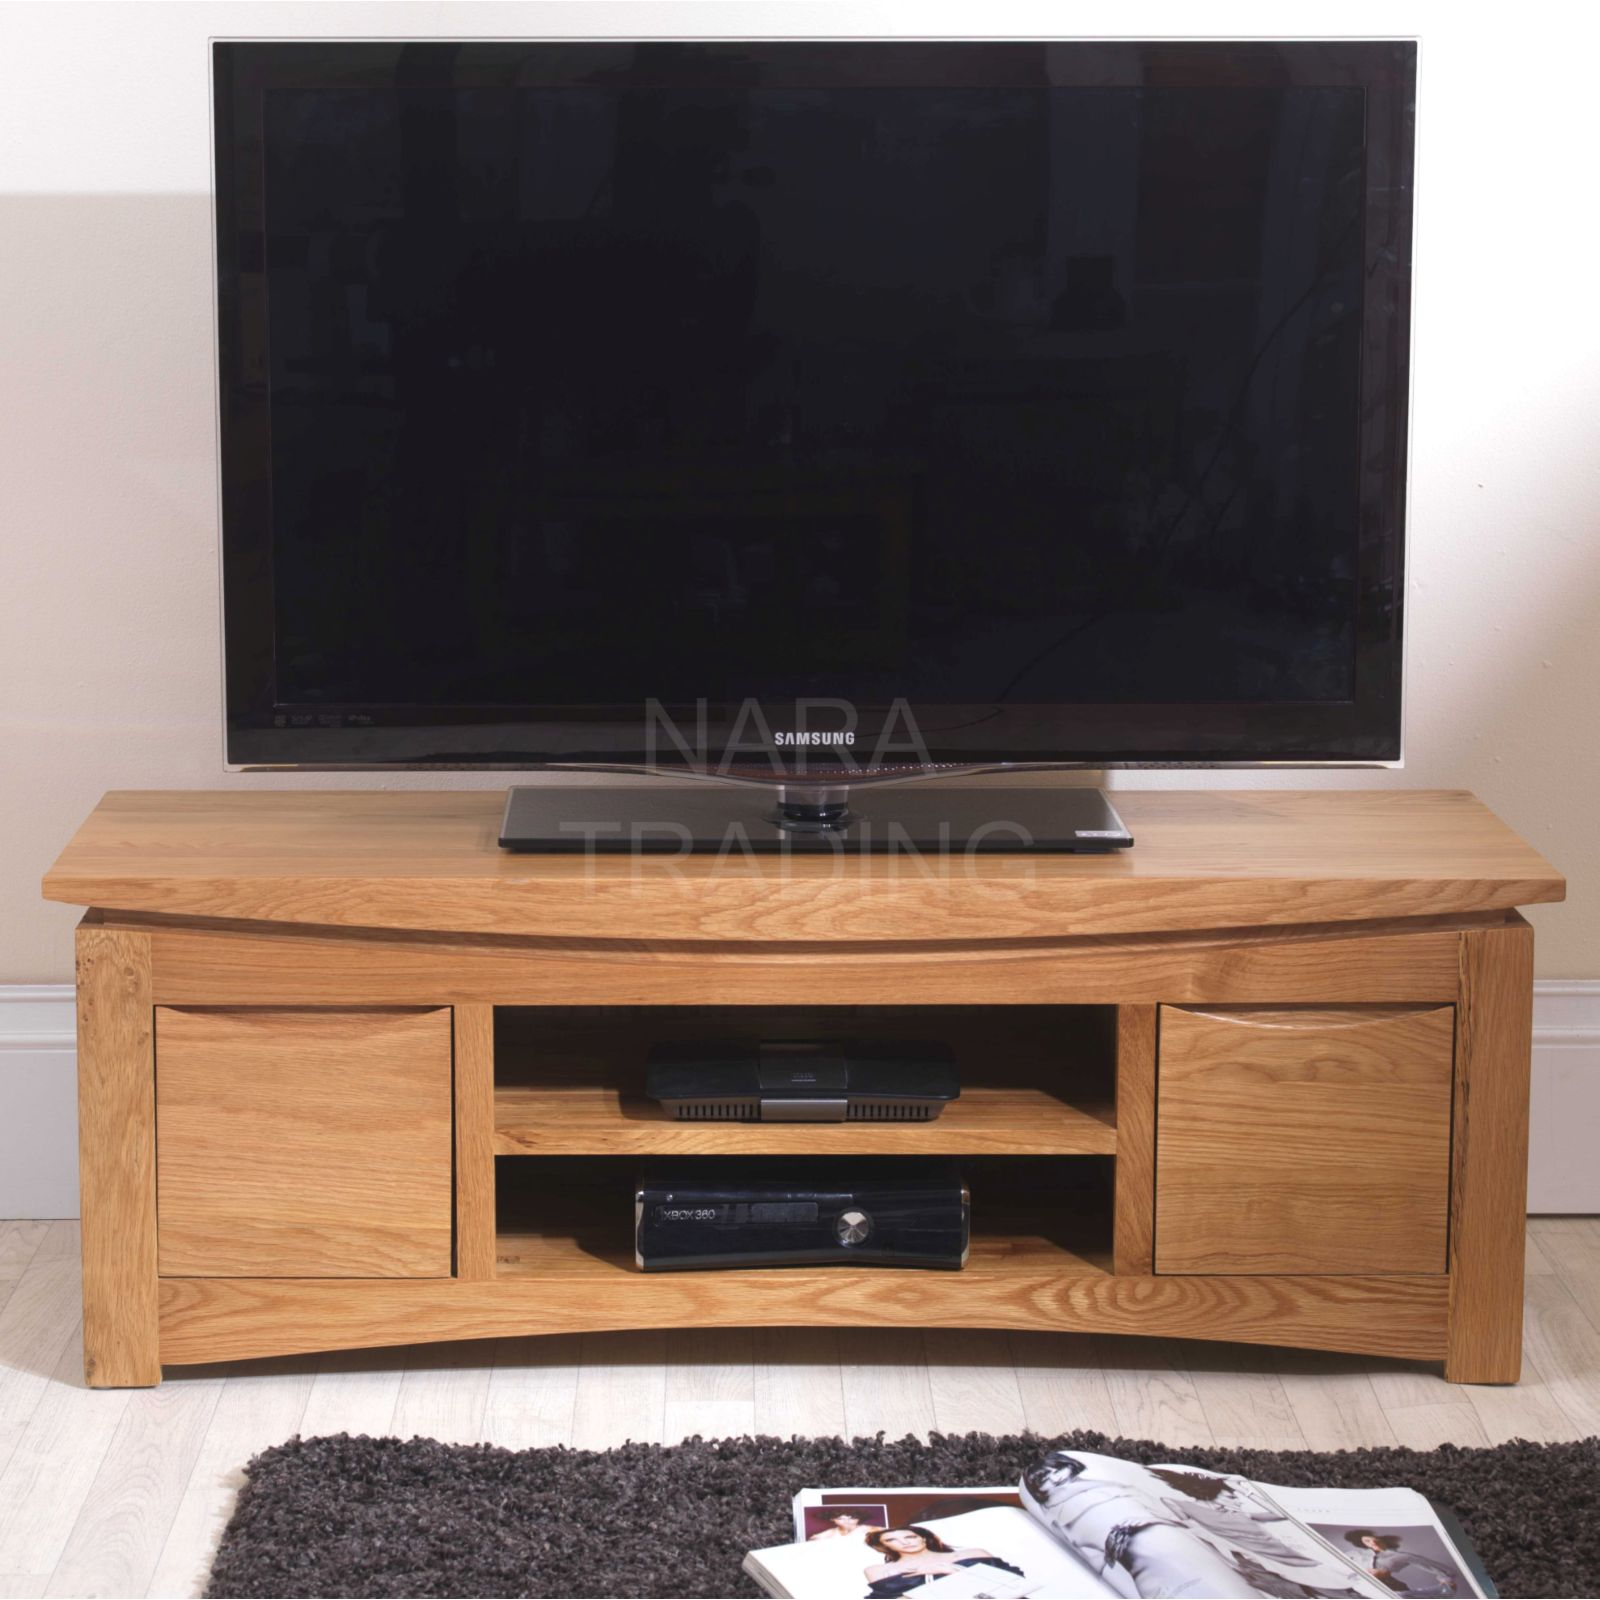 Crescent solid oak furniture widescreen tv dvd cabinet for Tv furniture